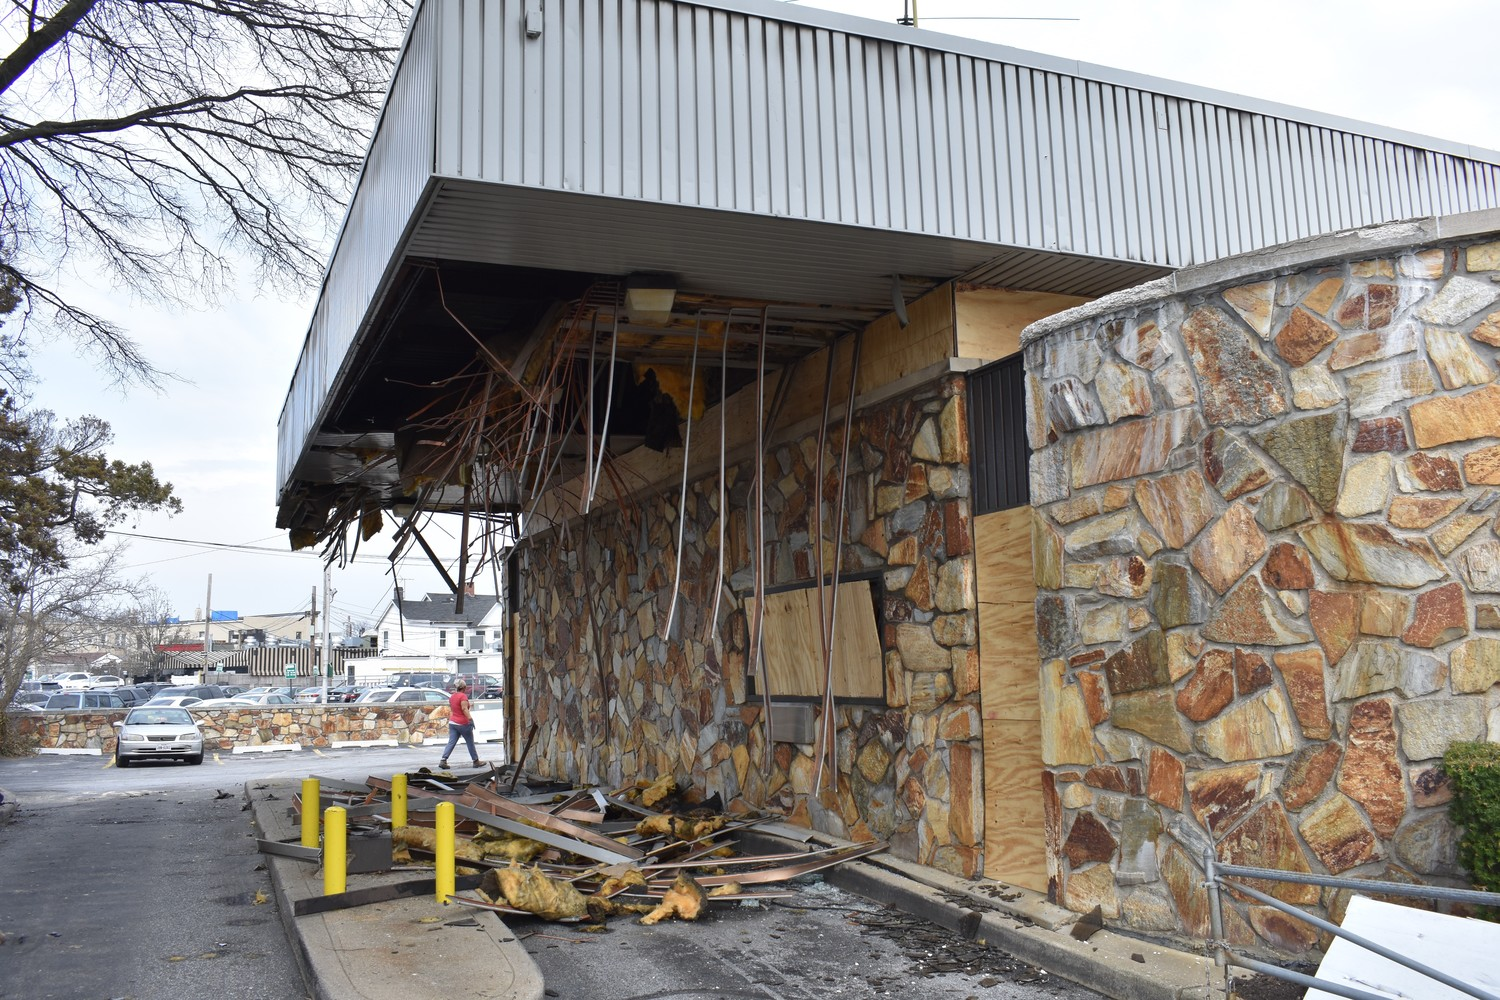 A fire last week left extensive damage on the former Capital One Bank at 77 Lincoln Ave., according to Rockville Centre Fire Chief Brian Cook.